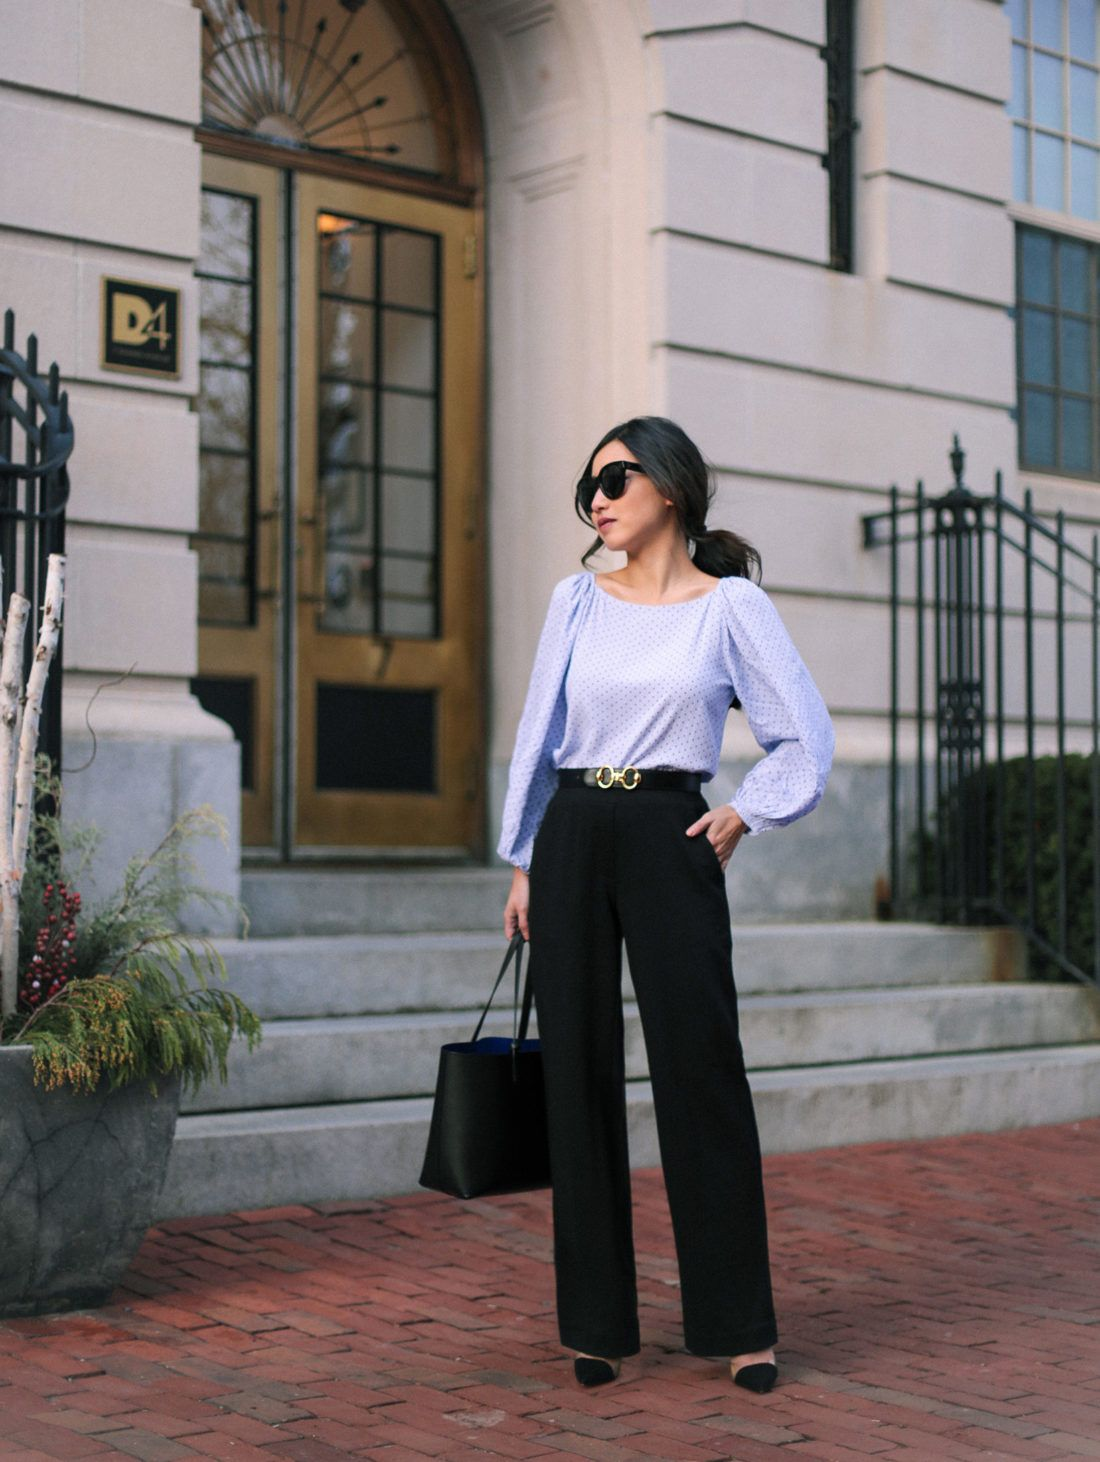 Petite Black Pants For Workwear Outfits With Leggings Office Outfits Business Casual Outfits [ 1462 x 1100 Pixel ]